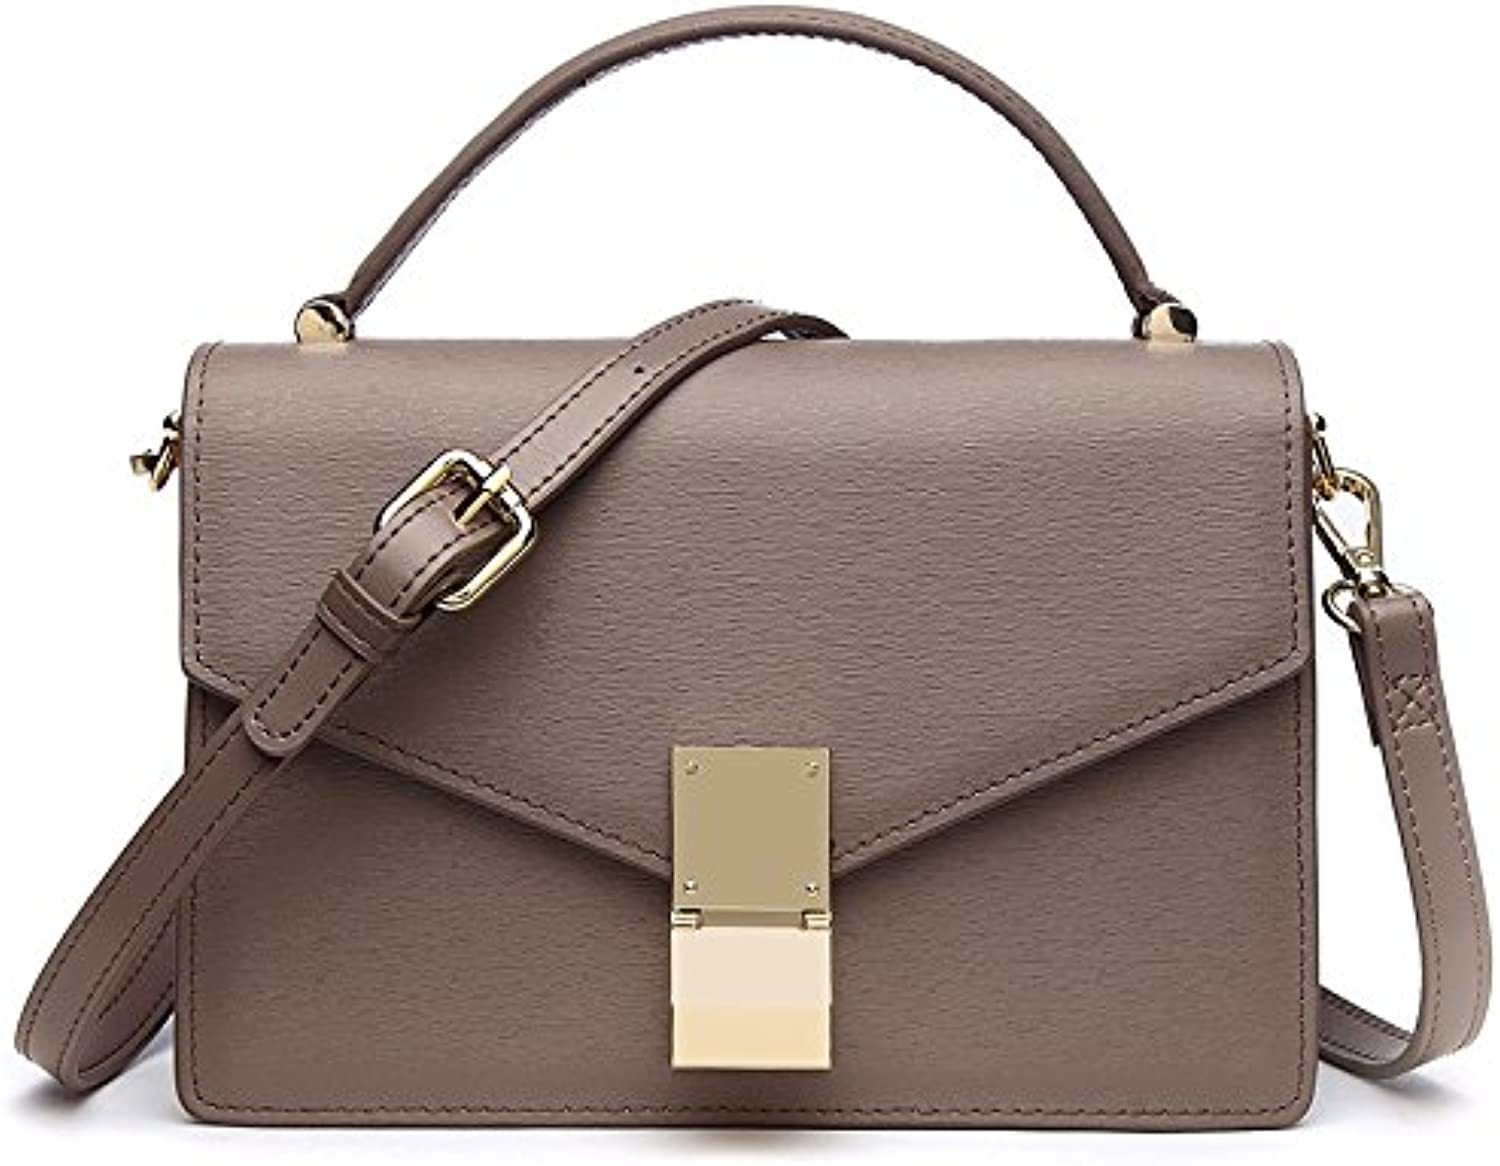 AI BAO Women's Leather Tofu Bag Simple Plain Shoulder Messenger Bag Handbag